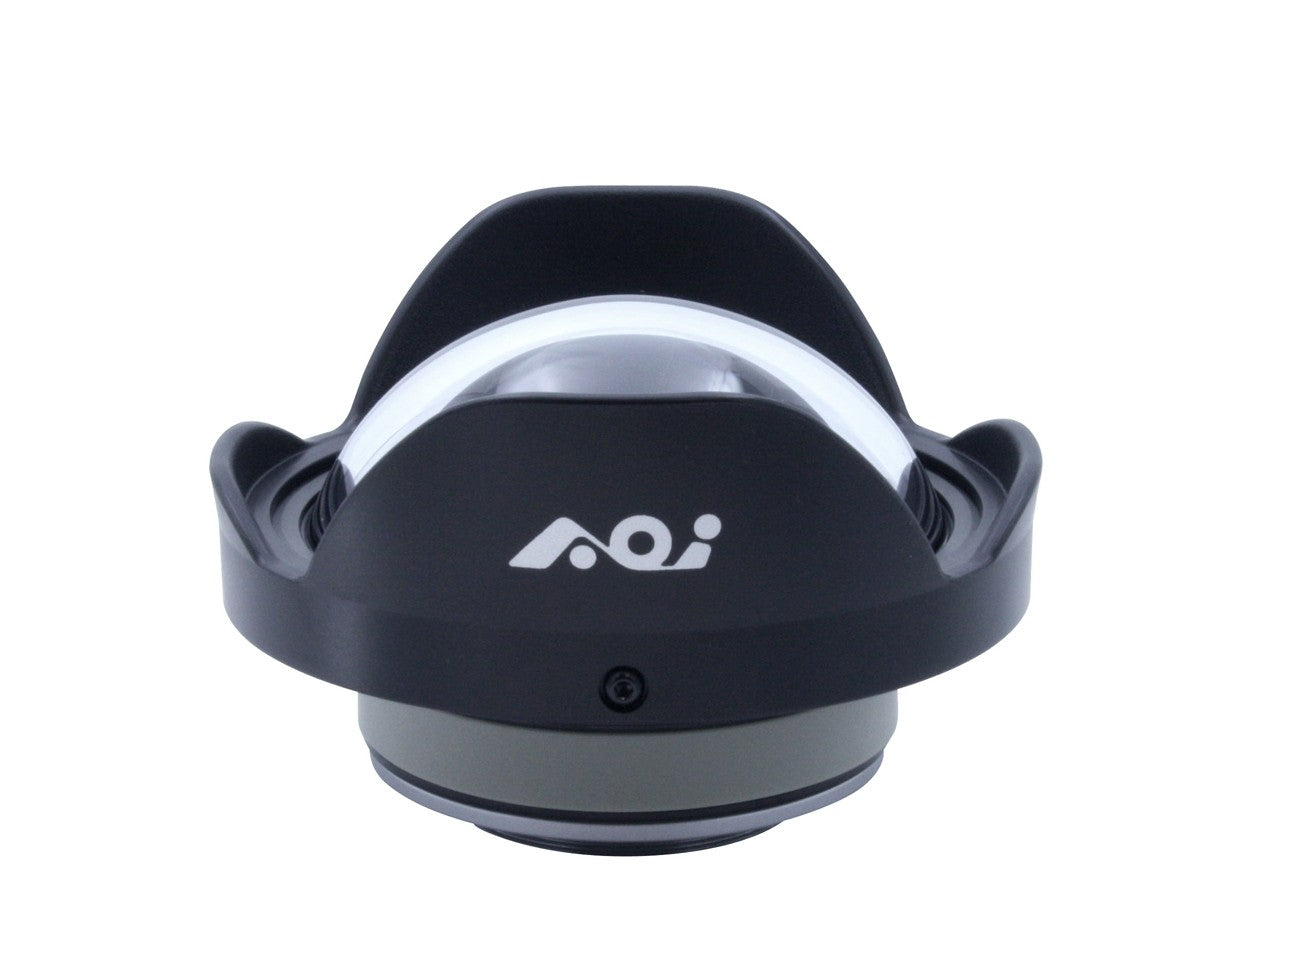 (((NEW))) AOI UWL-400A Wide-angle Lens (Not Included QRS-01-AD3)